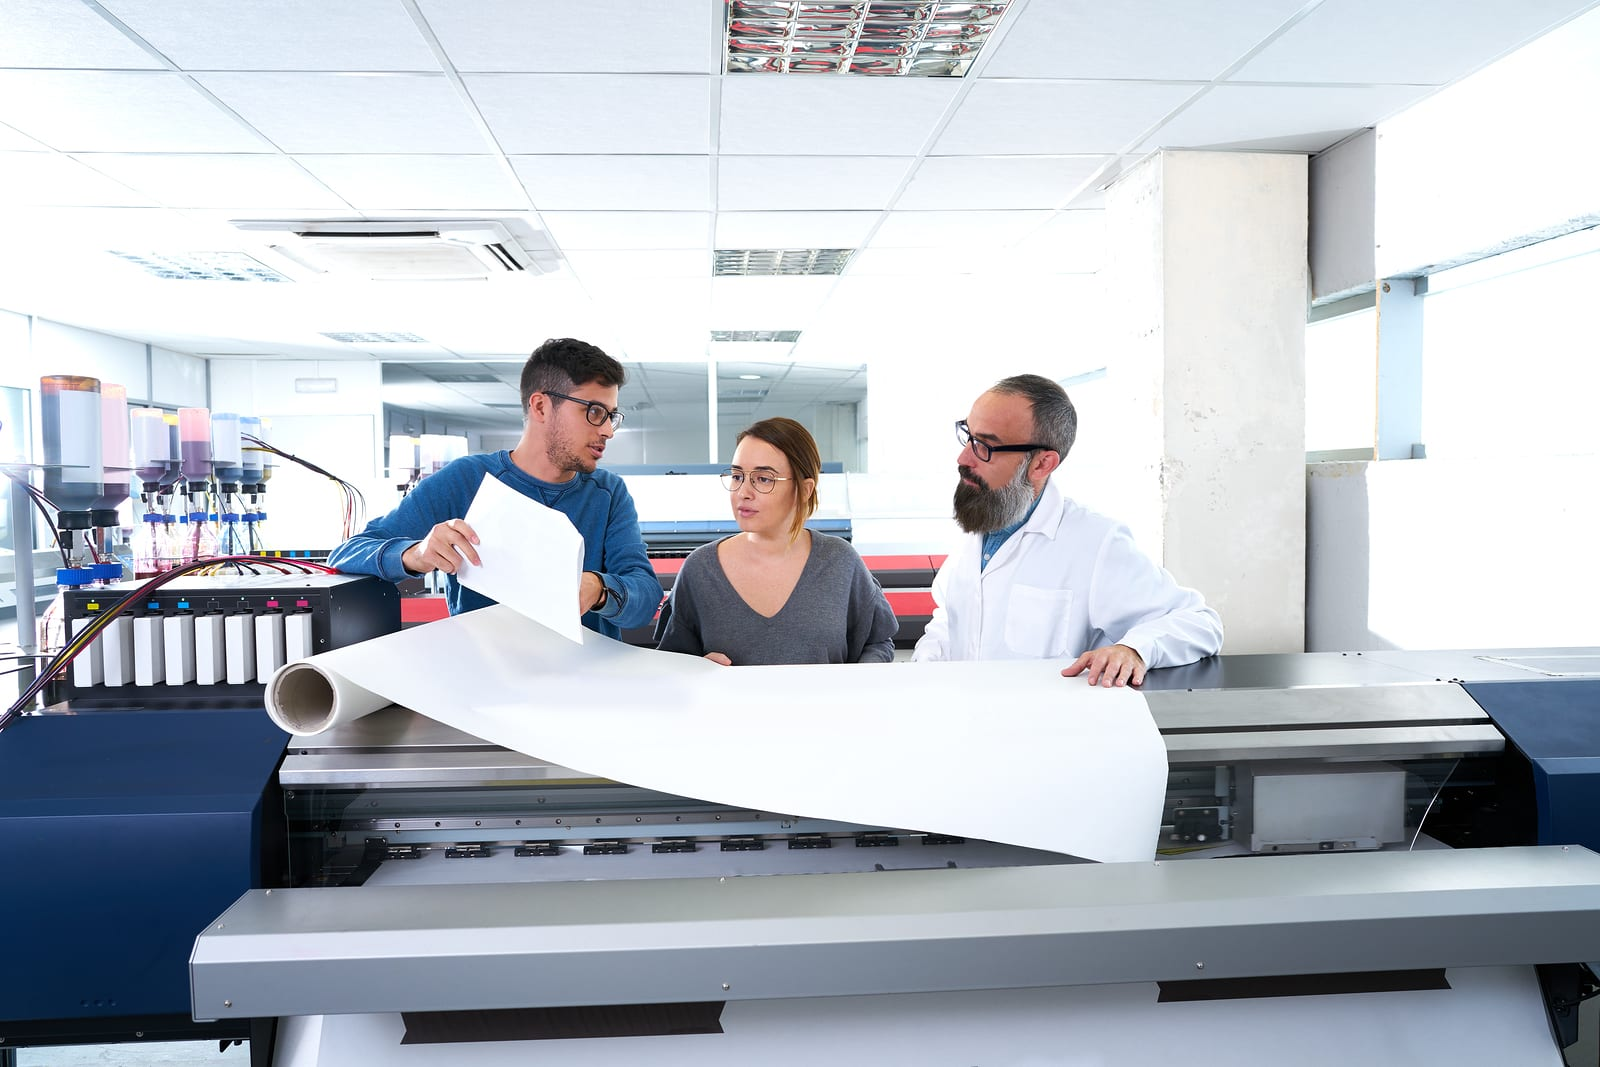 A team of two men and a woman work to isolate a problem with a design in a printing facility.